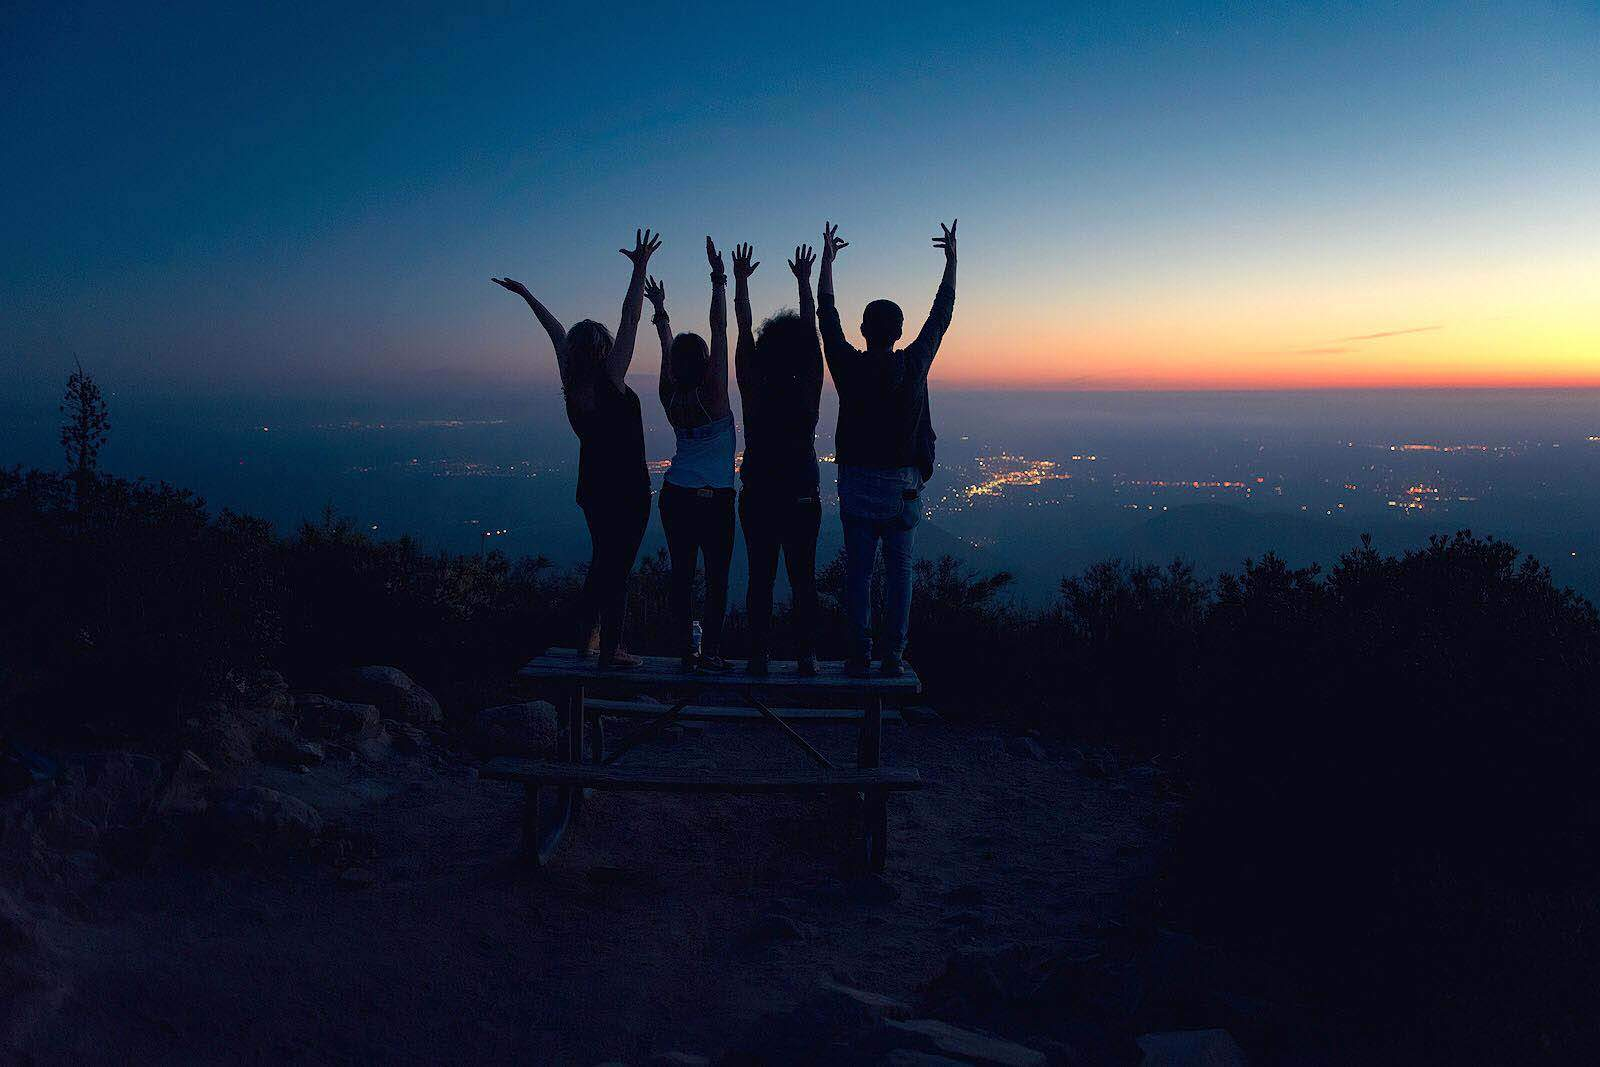 Iron mountain is located in Poway and is the 2nd highest peak in this town. From the top you get beautiful panoramic views that can be seen all the way to the ocean.